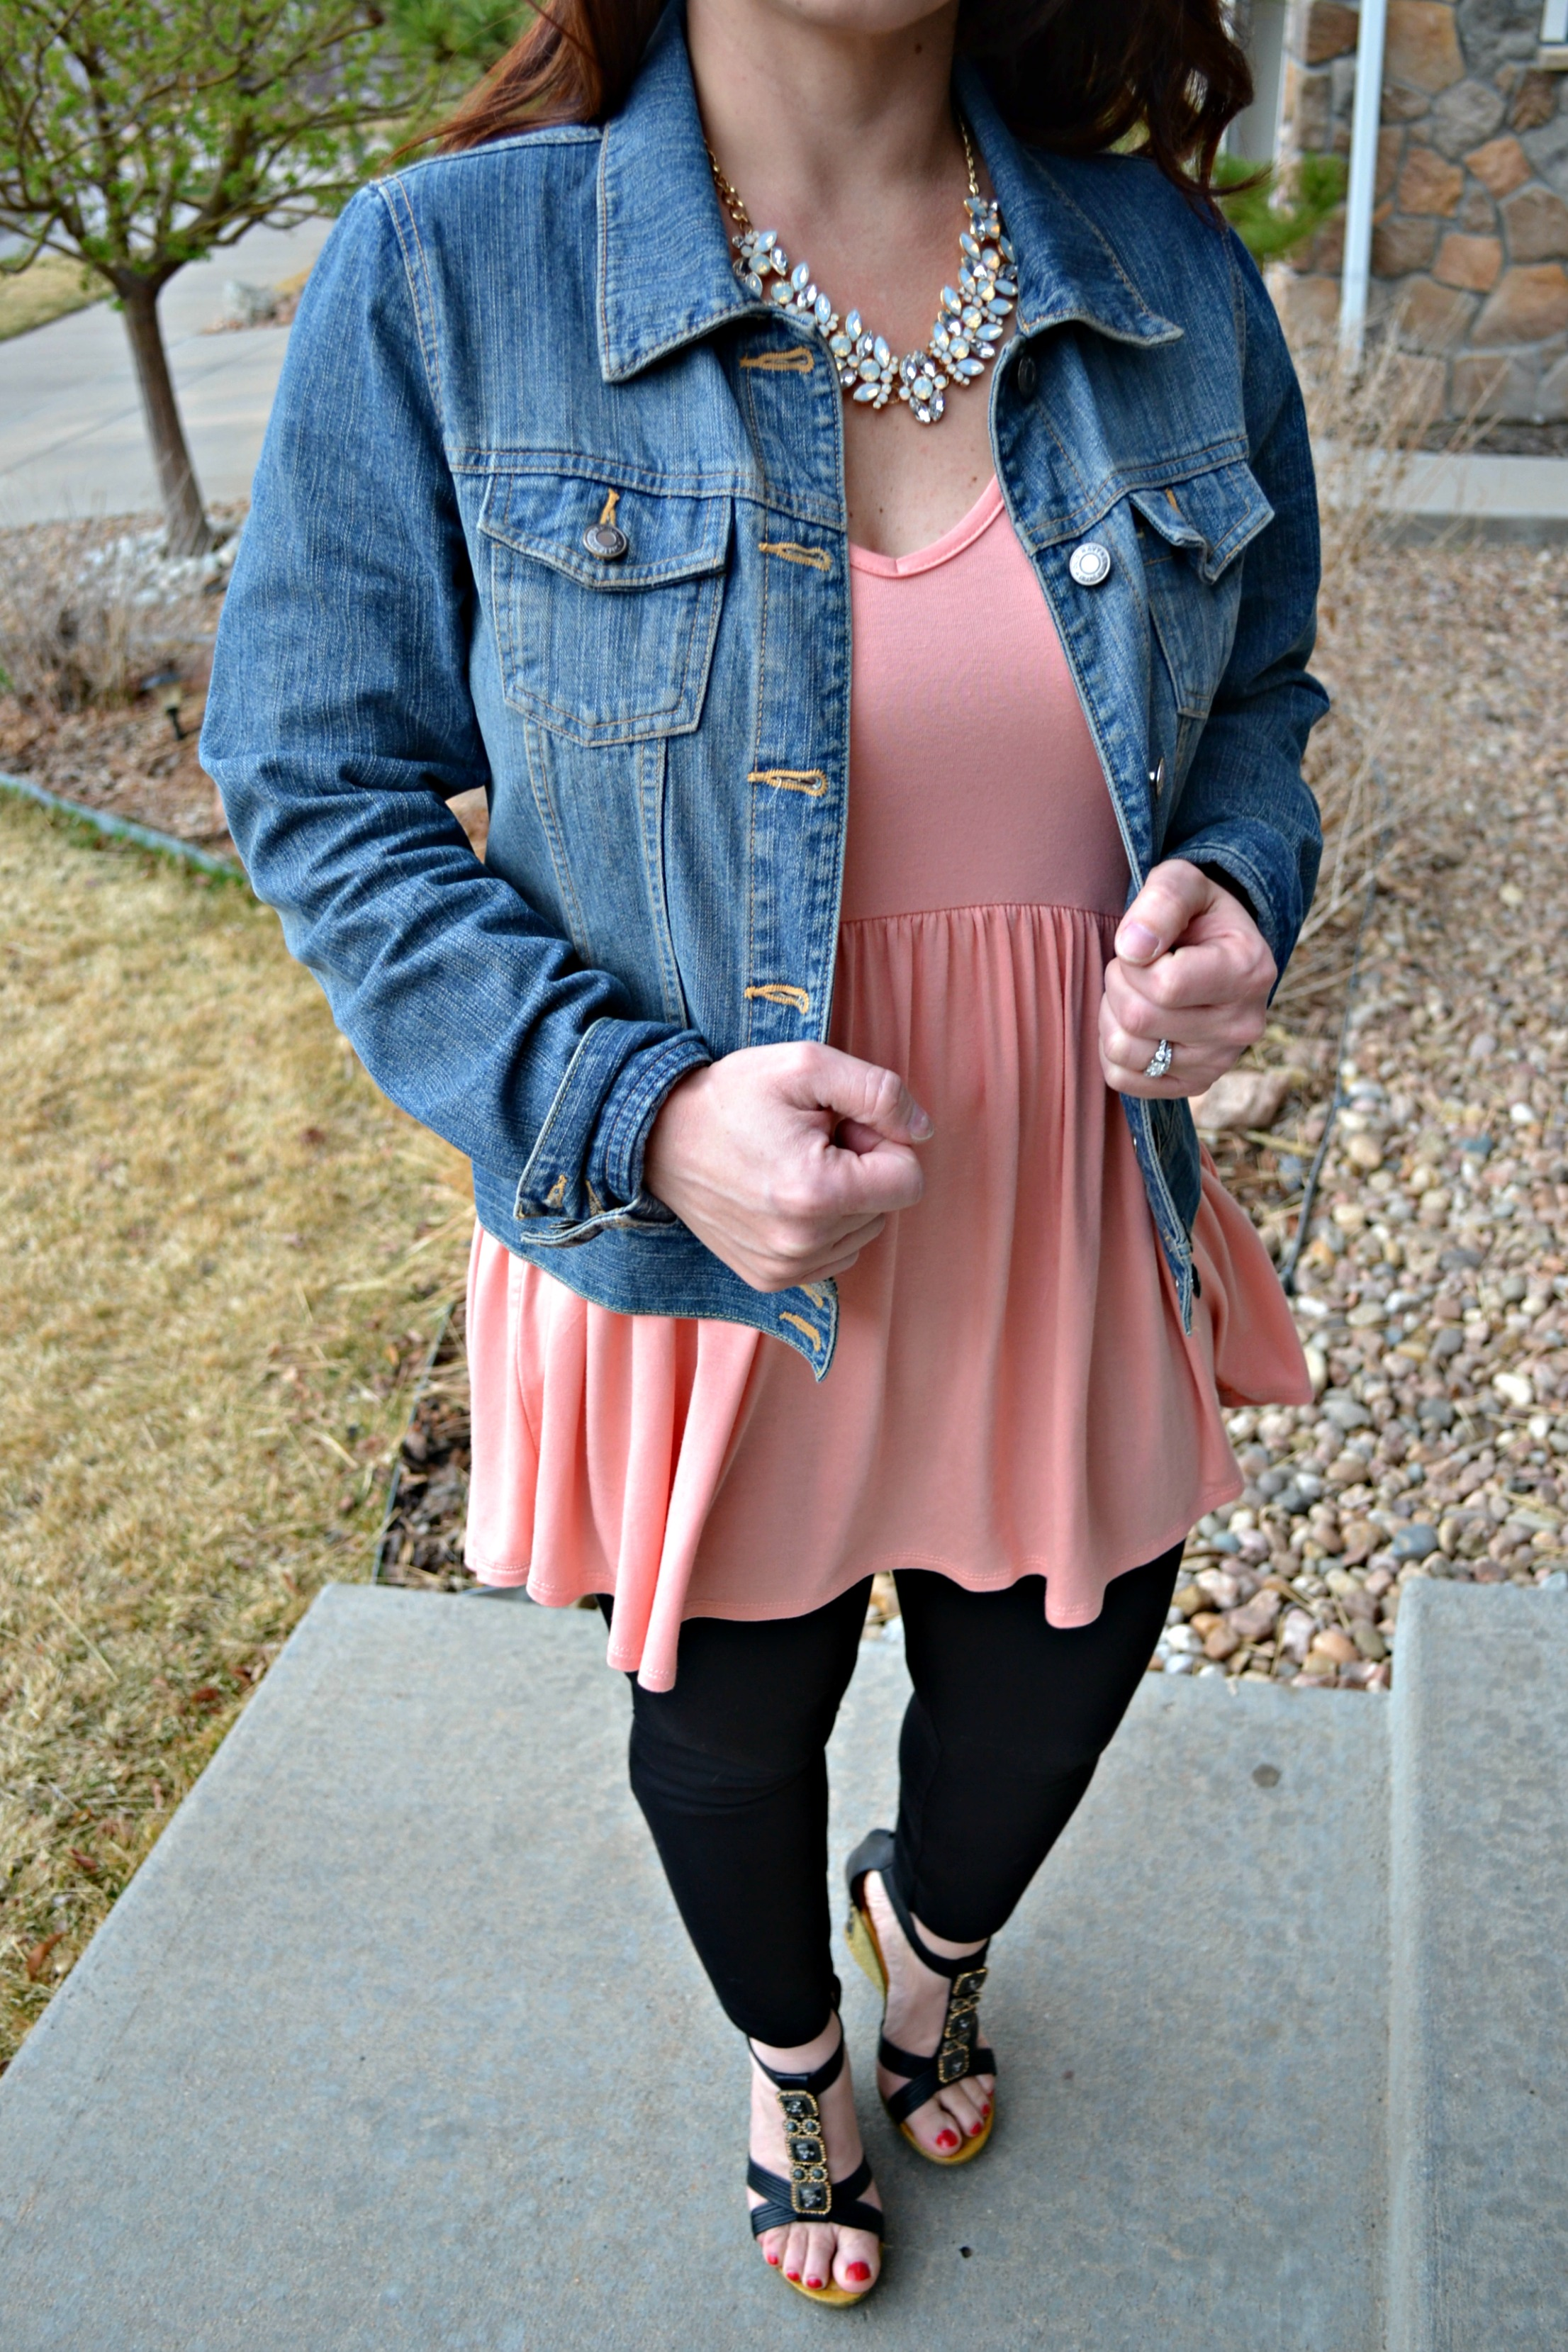 Tunic with a Jean jacket